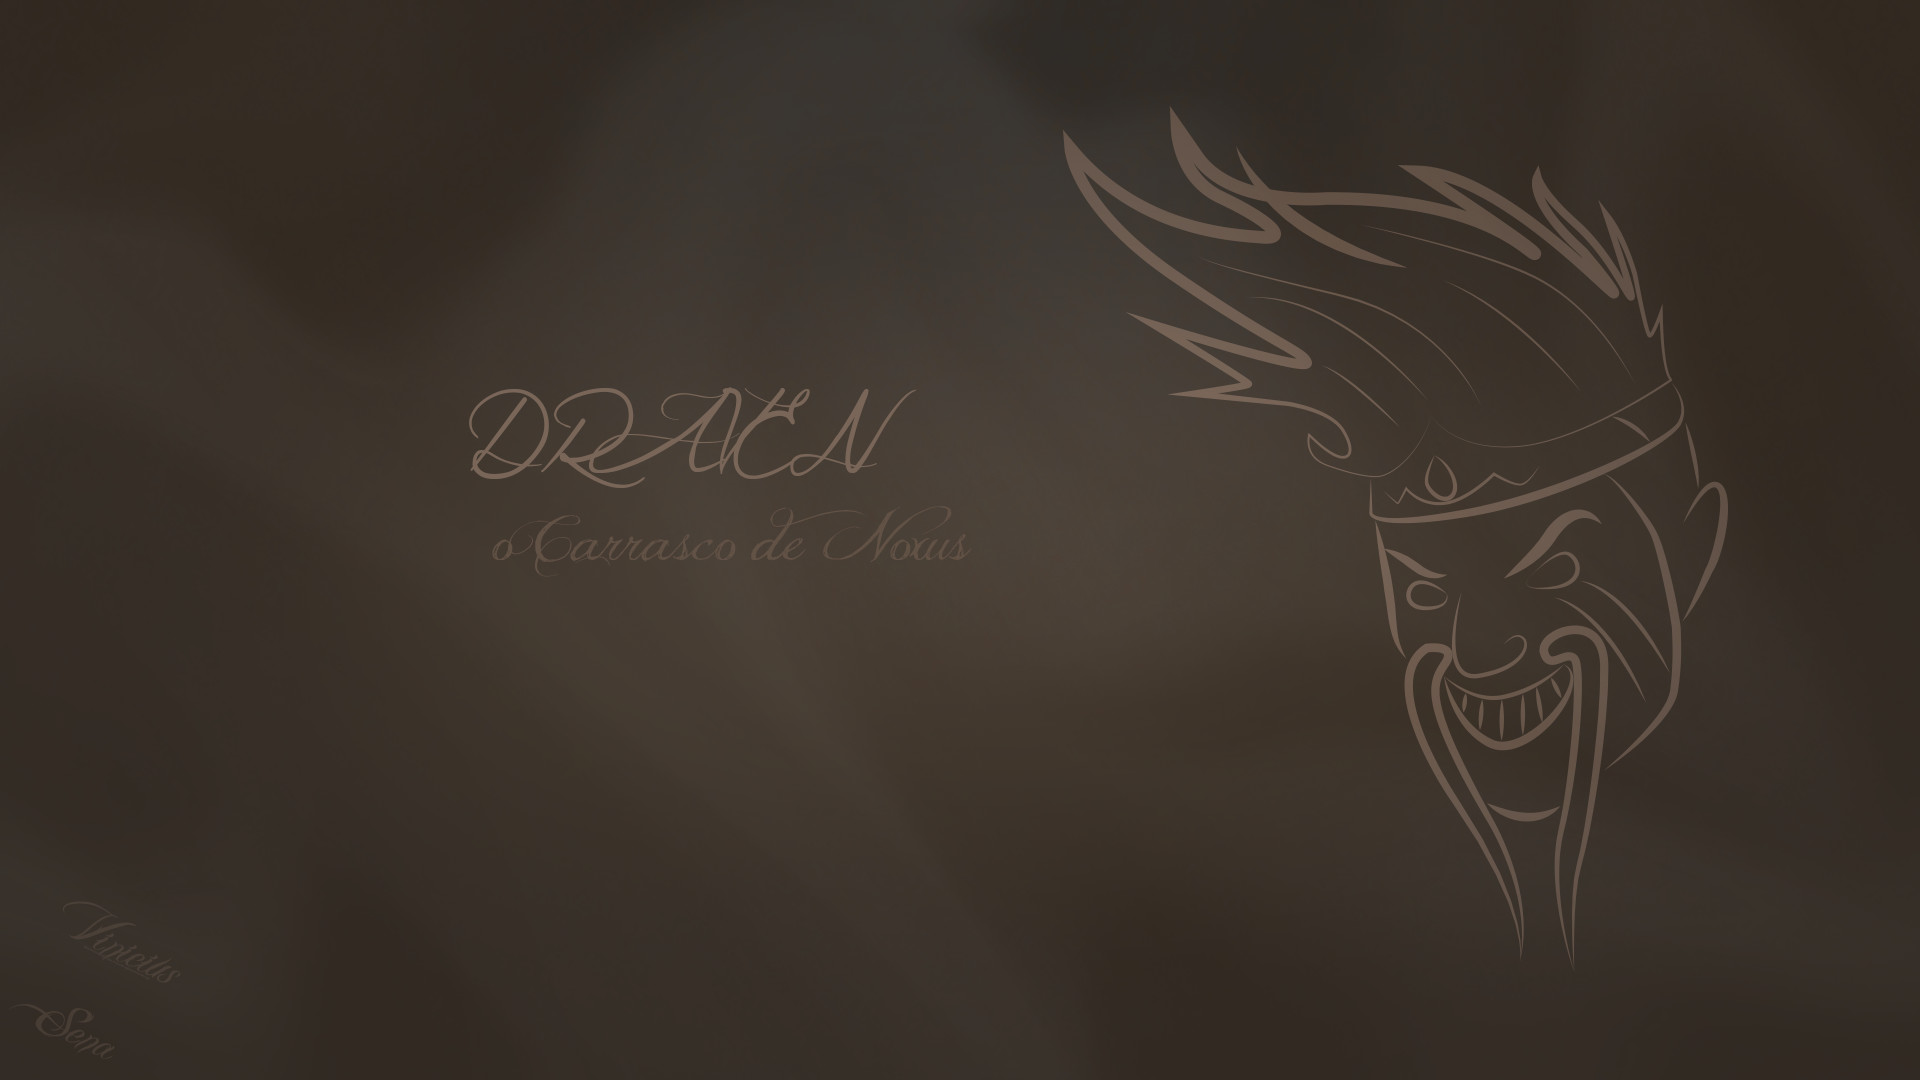 1920x1080 Draven wallpaper